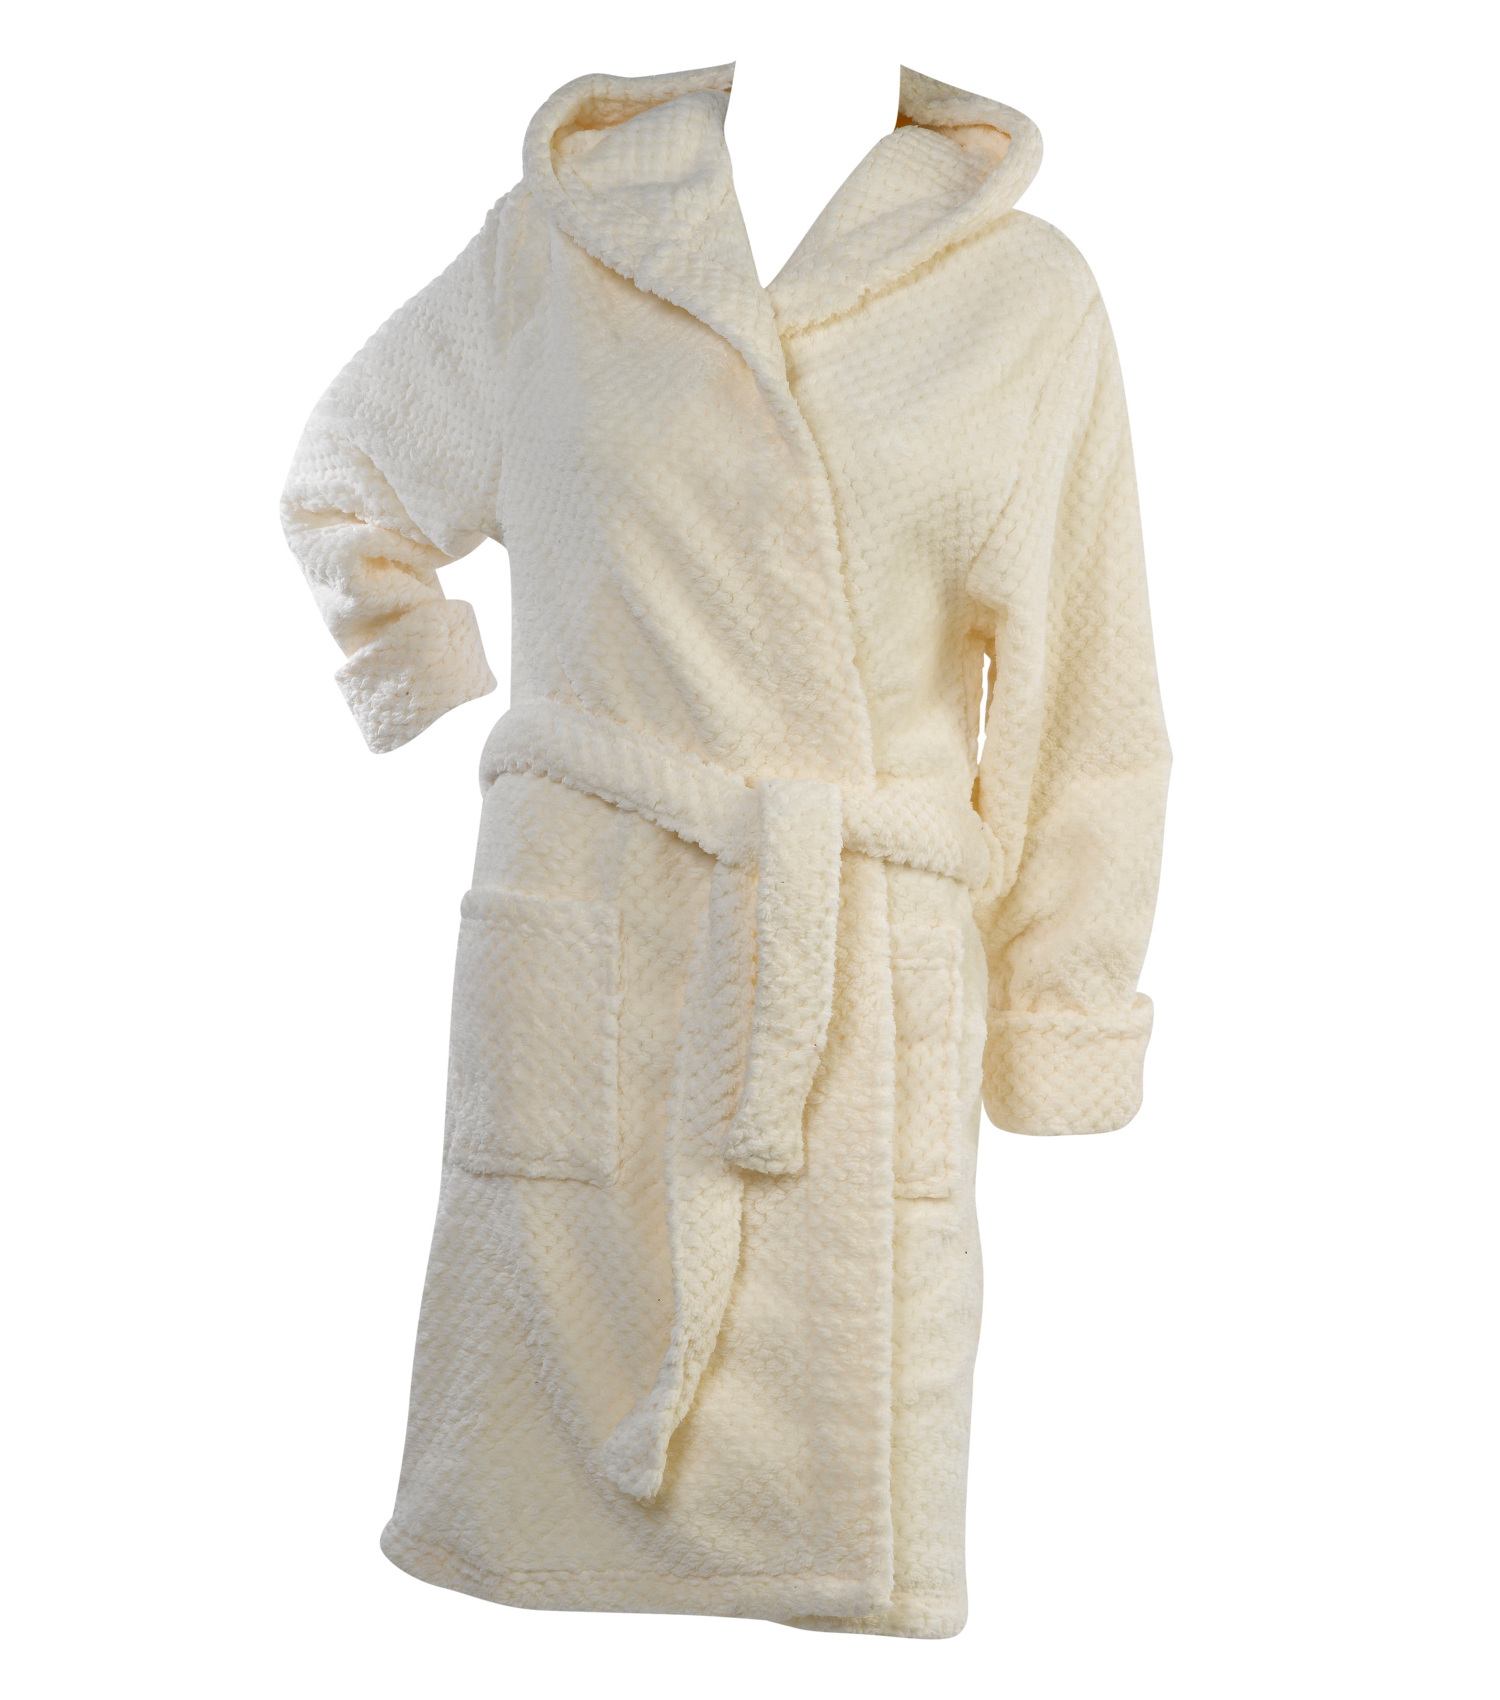 Dressing Gown Womens Hooded Bath Robe Soft Waffle Fleece ...